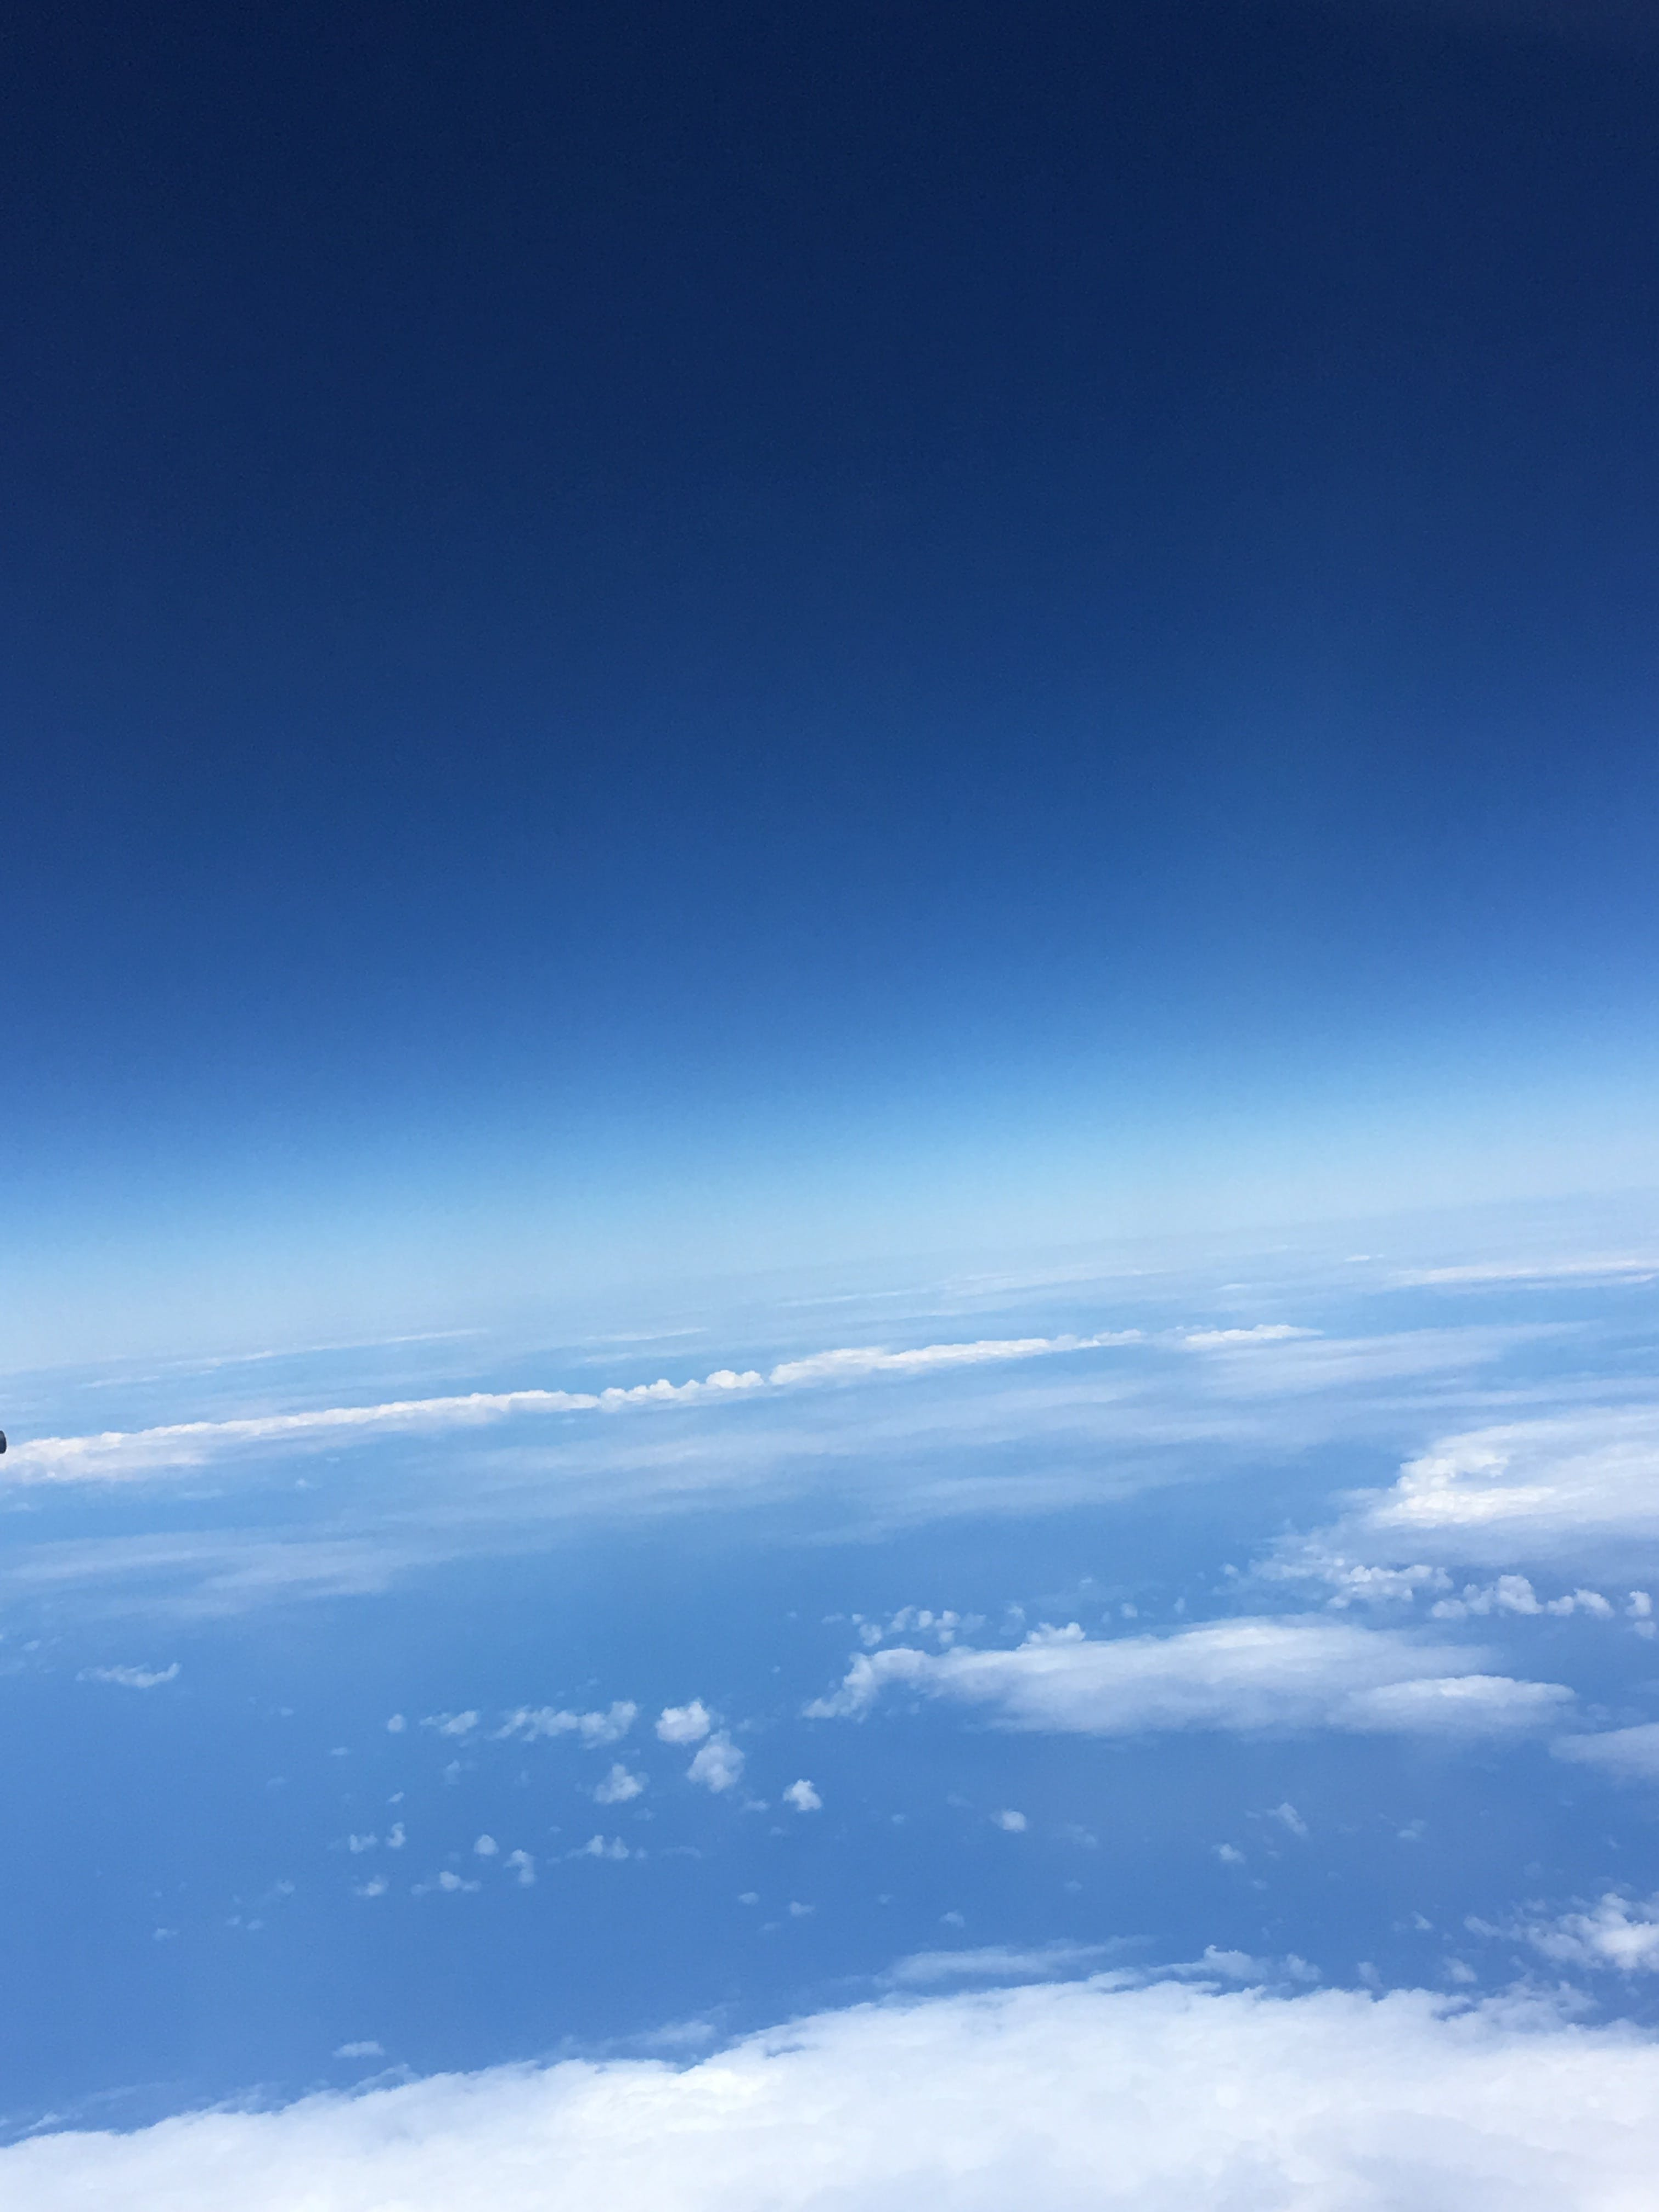 Free stock photo of airplane, clouds, pacific ocean